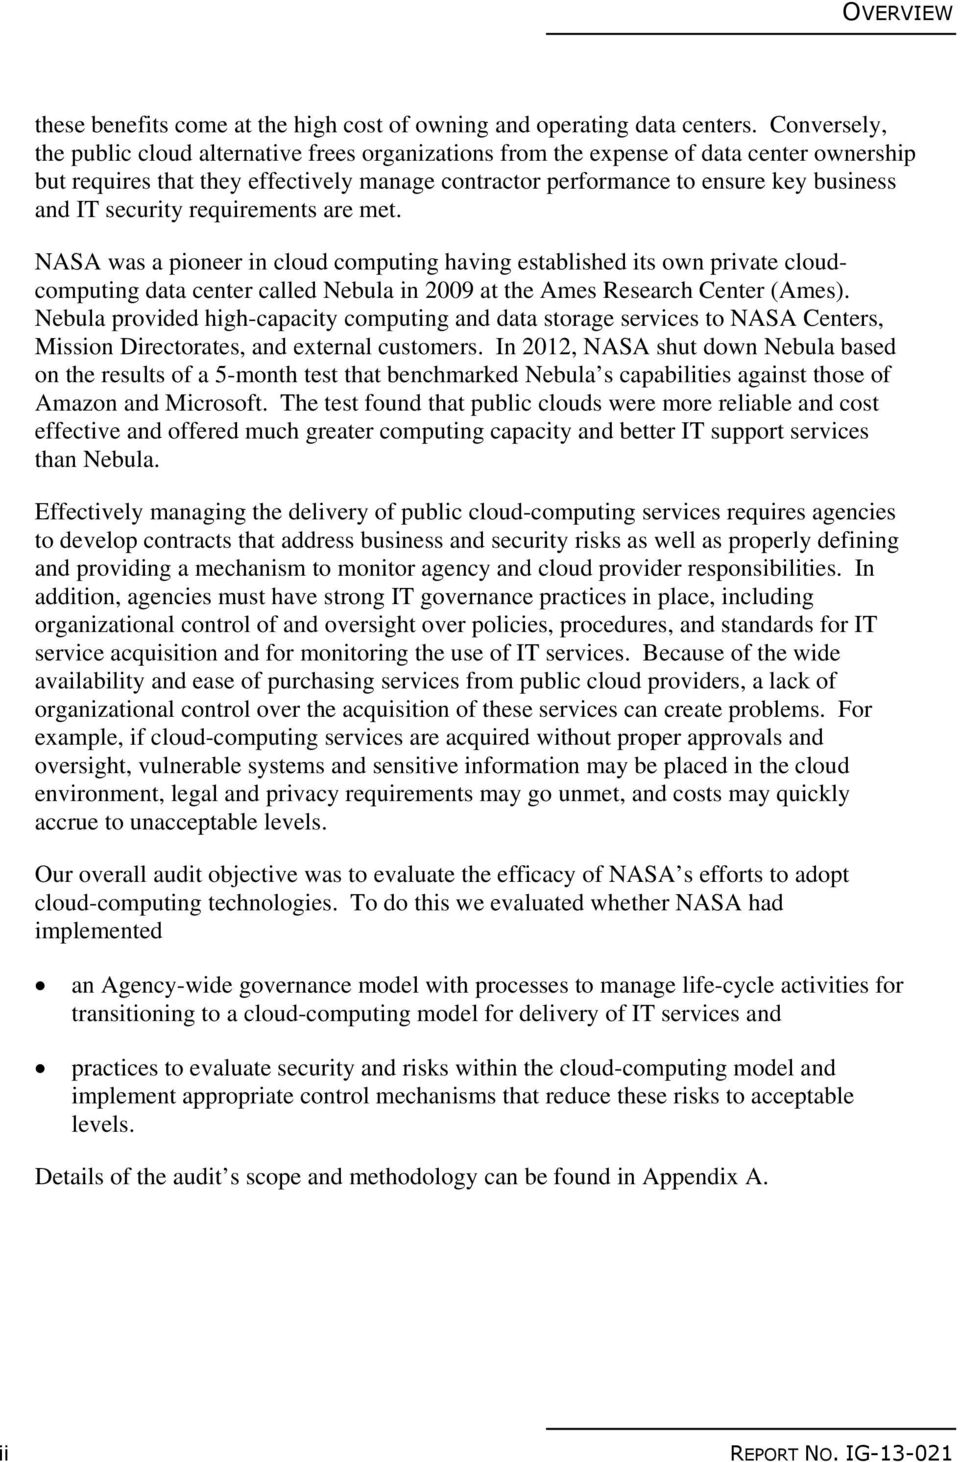 security requirements are met. NASA was a pioneer in cloud computing having established its own private cloudcomputing data center called Nebula in 2009 at the Ames Research Center (Ames).